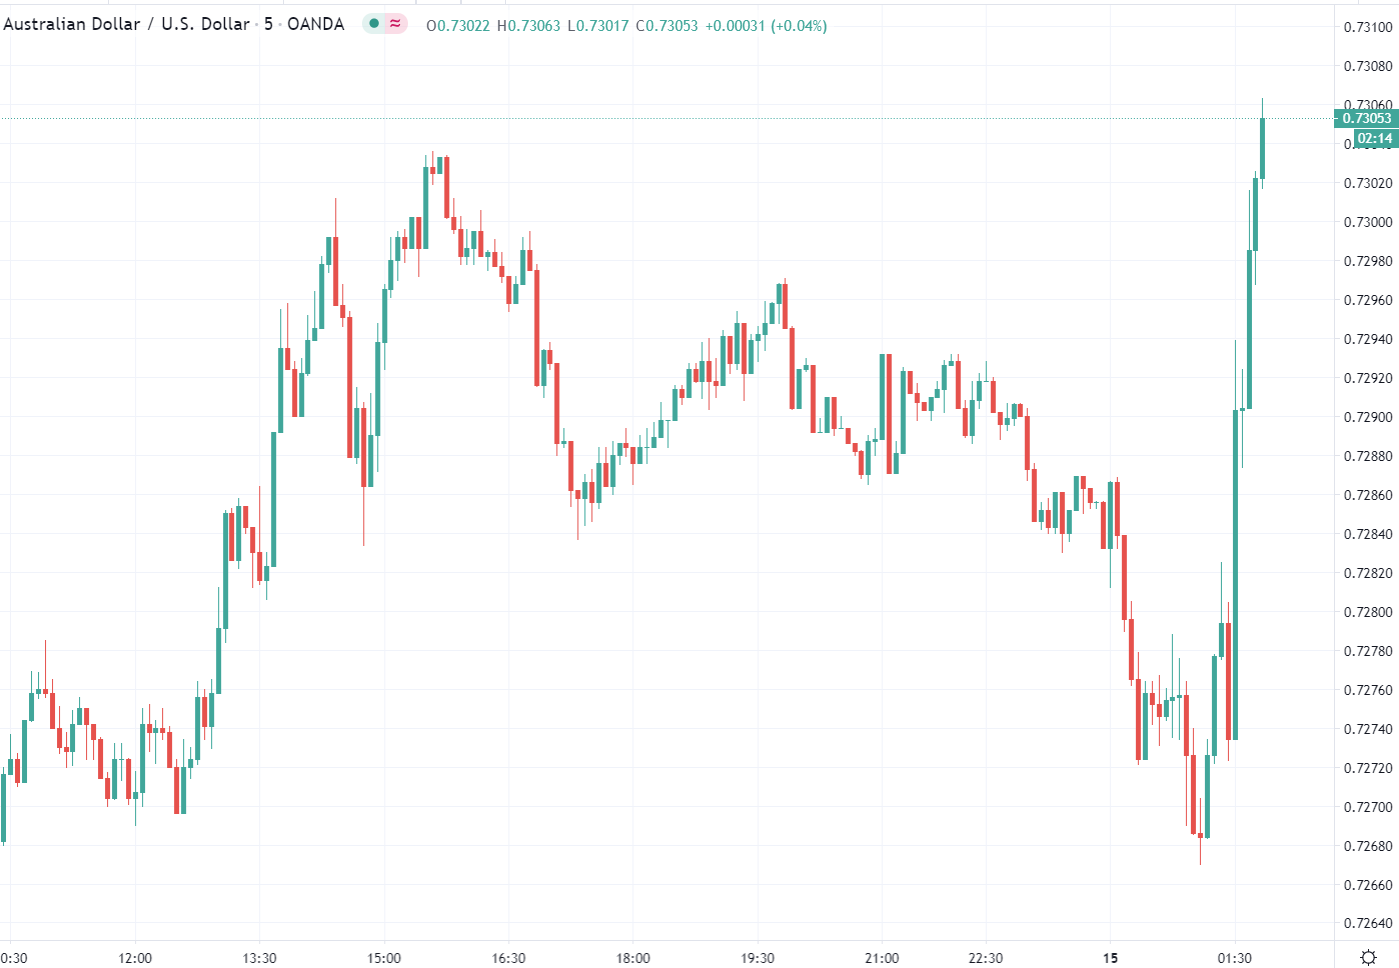 The Reserve Bank of Australia has been lamenting the strength of the Australian dollar for a couple of months now.